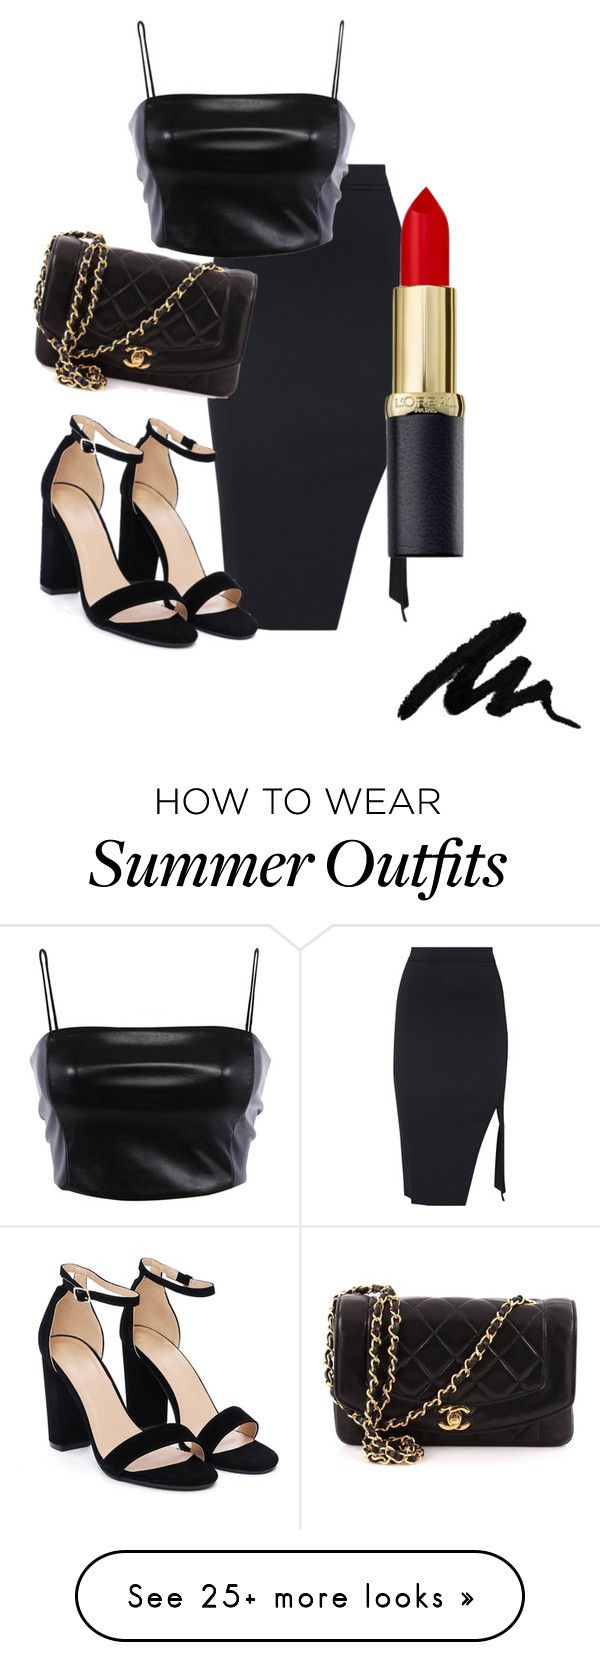 """""""Untitled #2"""" by yyybbyubxhu on Polyvore featuring Nasty Gal, Chanel and allblackoutfit"""